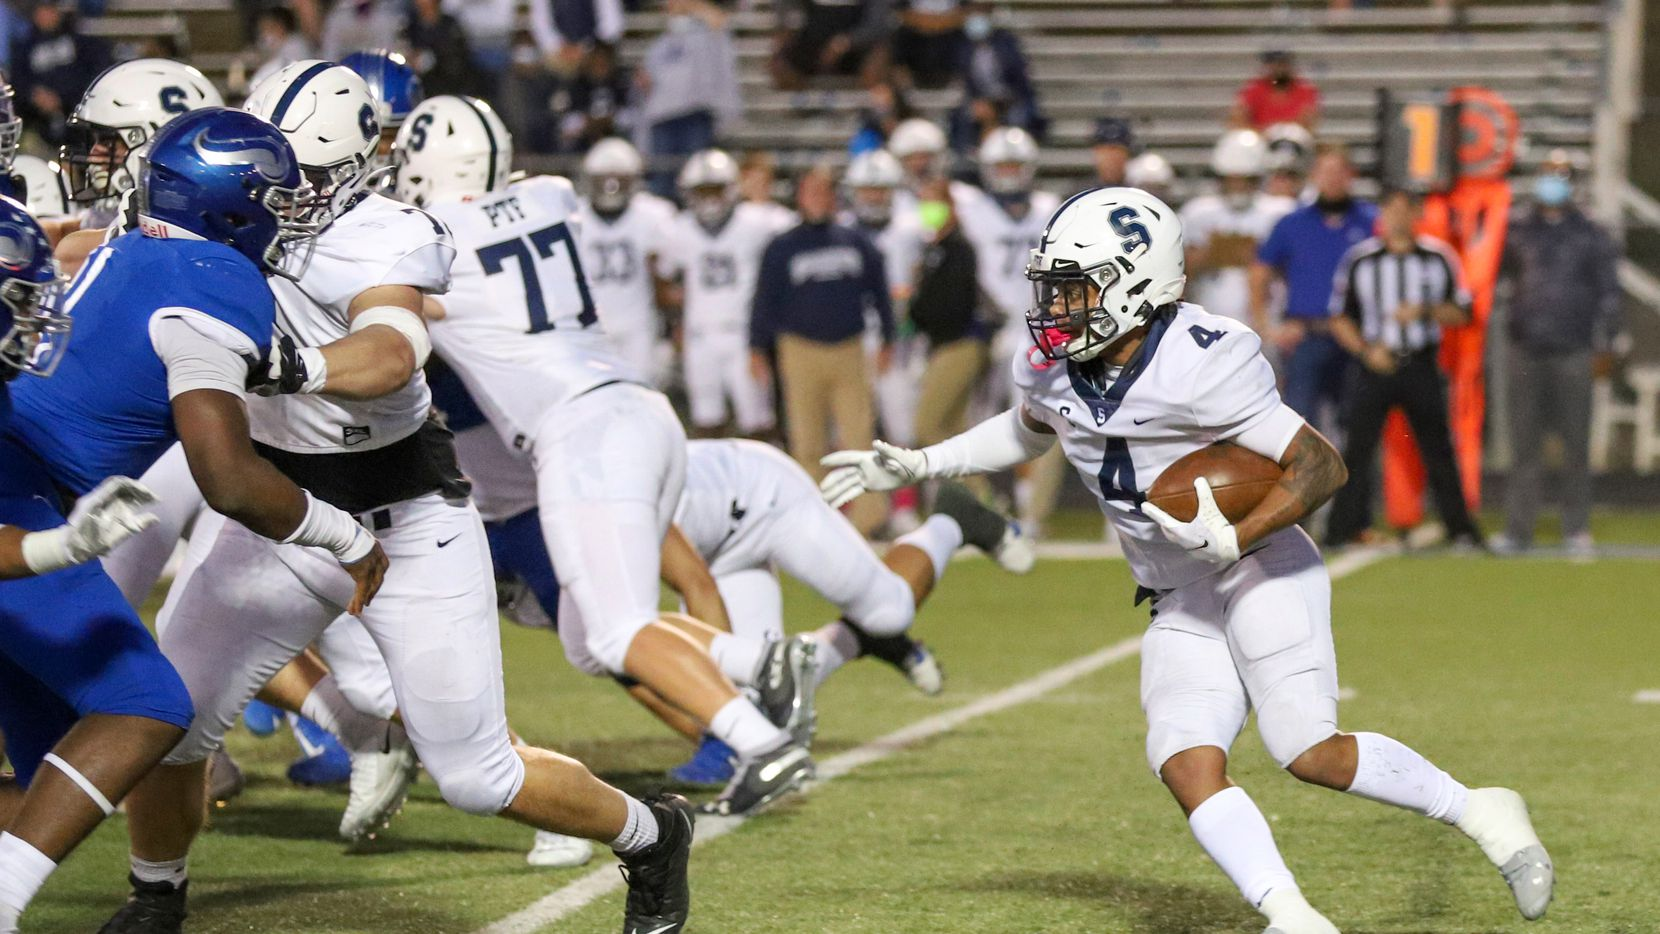 Fort Worth All Saints running back Montaye Dawson (4) is one of three SMU pledges who will take the field Friday, as Parish Episcopal hosts All Saints.